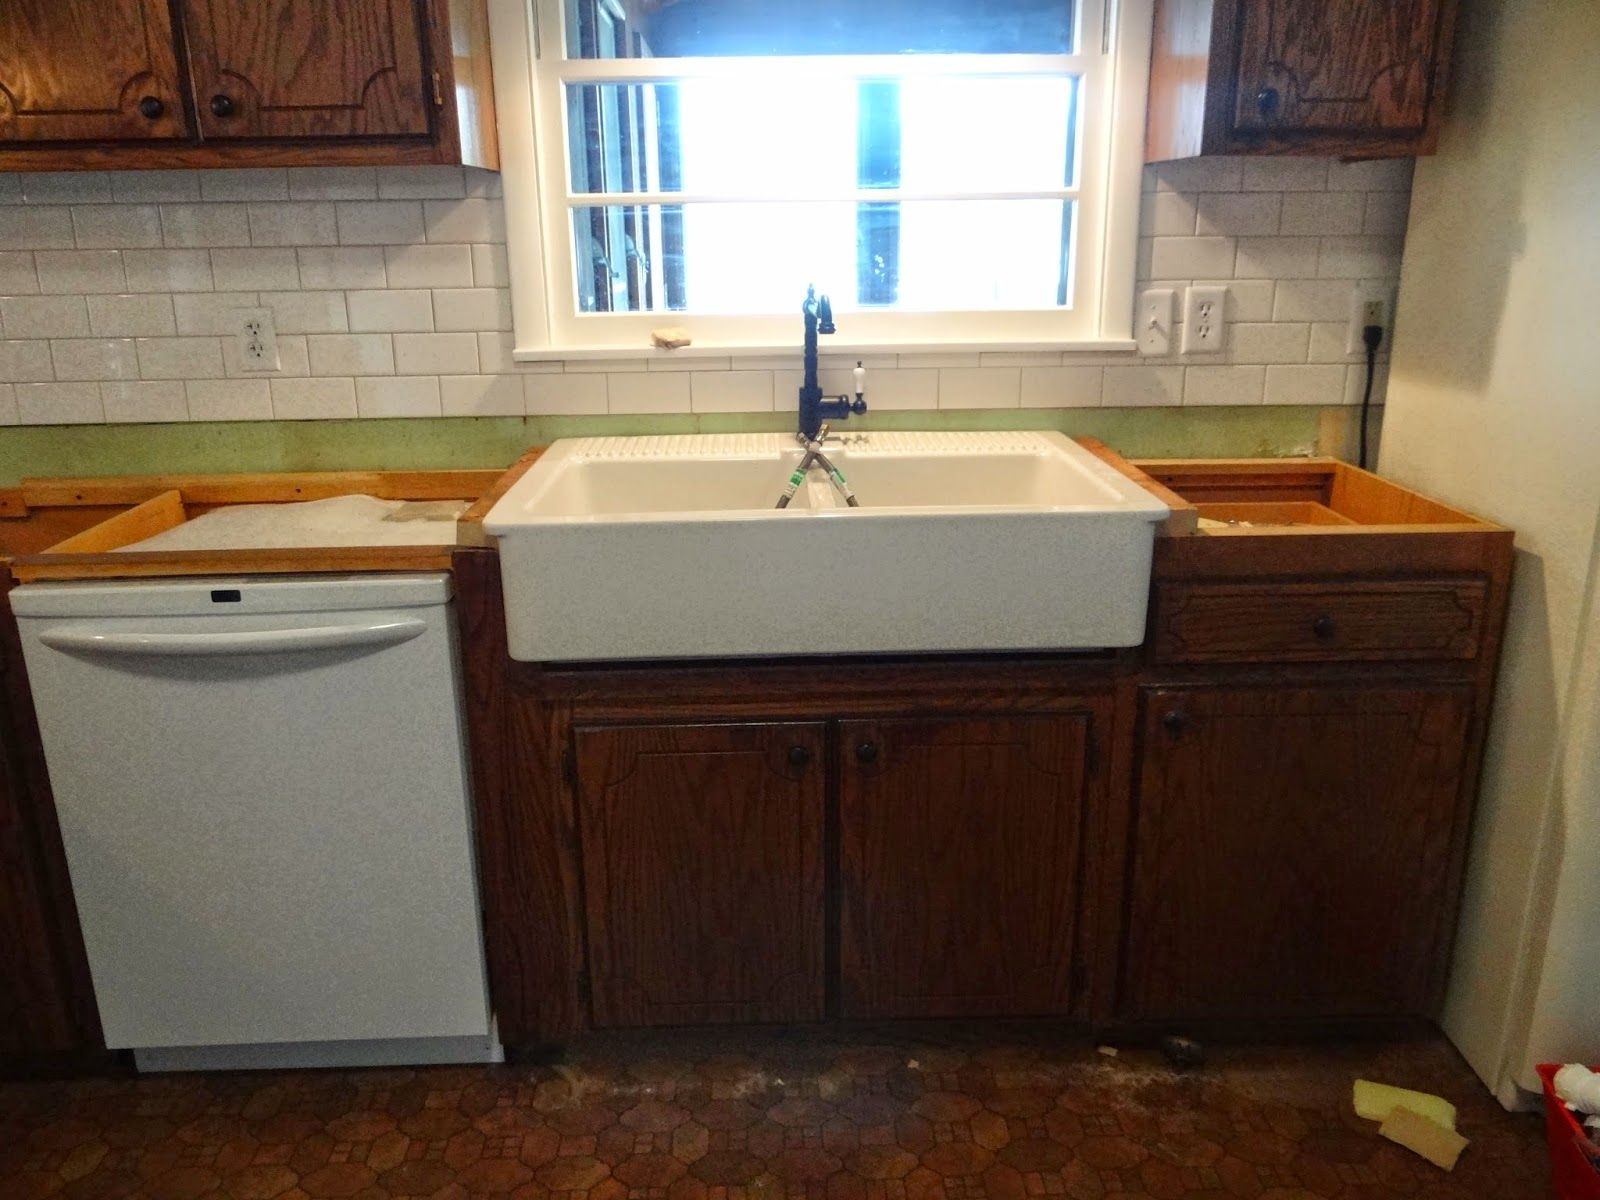 Installing An Ikea Domsjo Sink In A 36 Sink Base Cabinet Sink Base Cabinets Farm Sink Kitchen